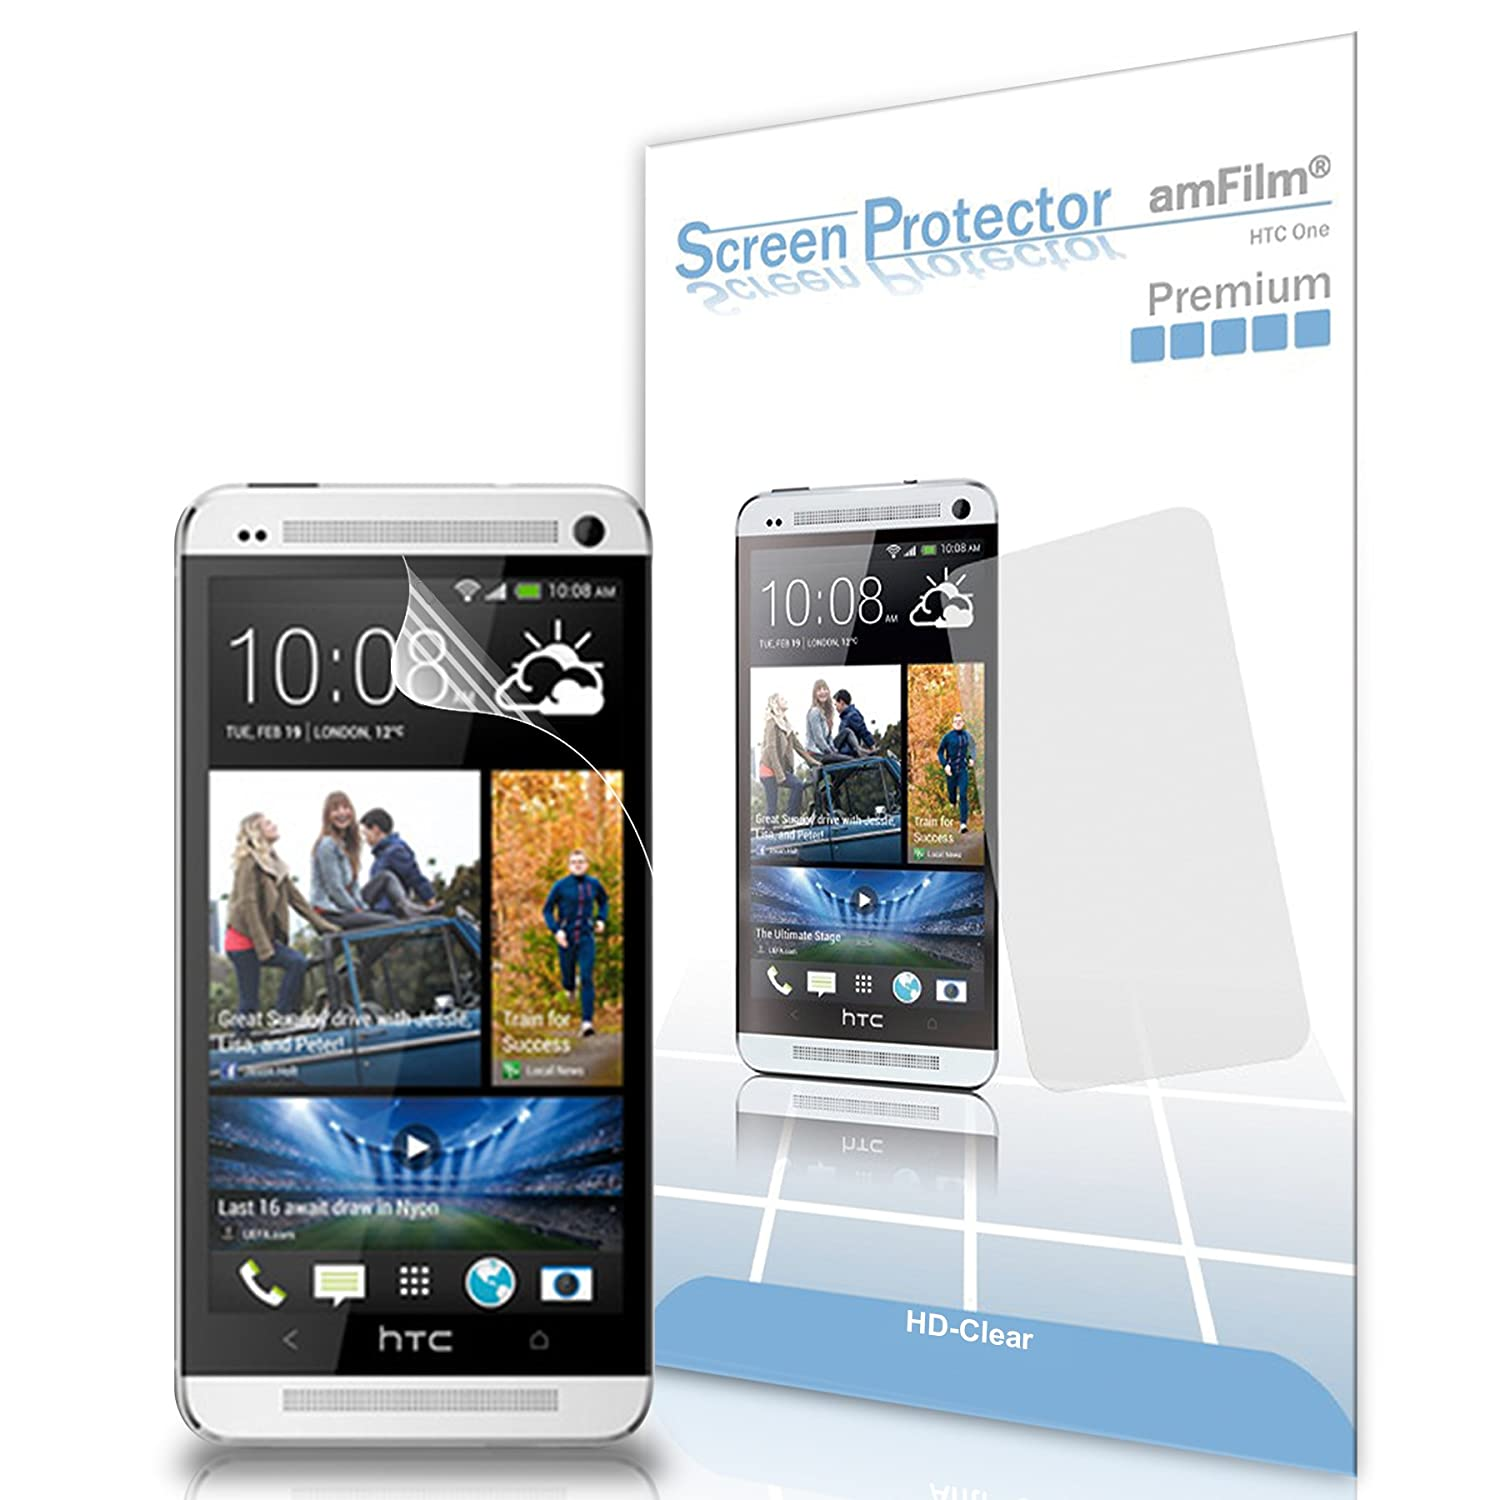 Htc One Screen Protector Amfilm Premium Hd Clear Rod Belt Tempat Handphone For M7 2013 3 Pack Cell Phones Accessories